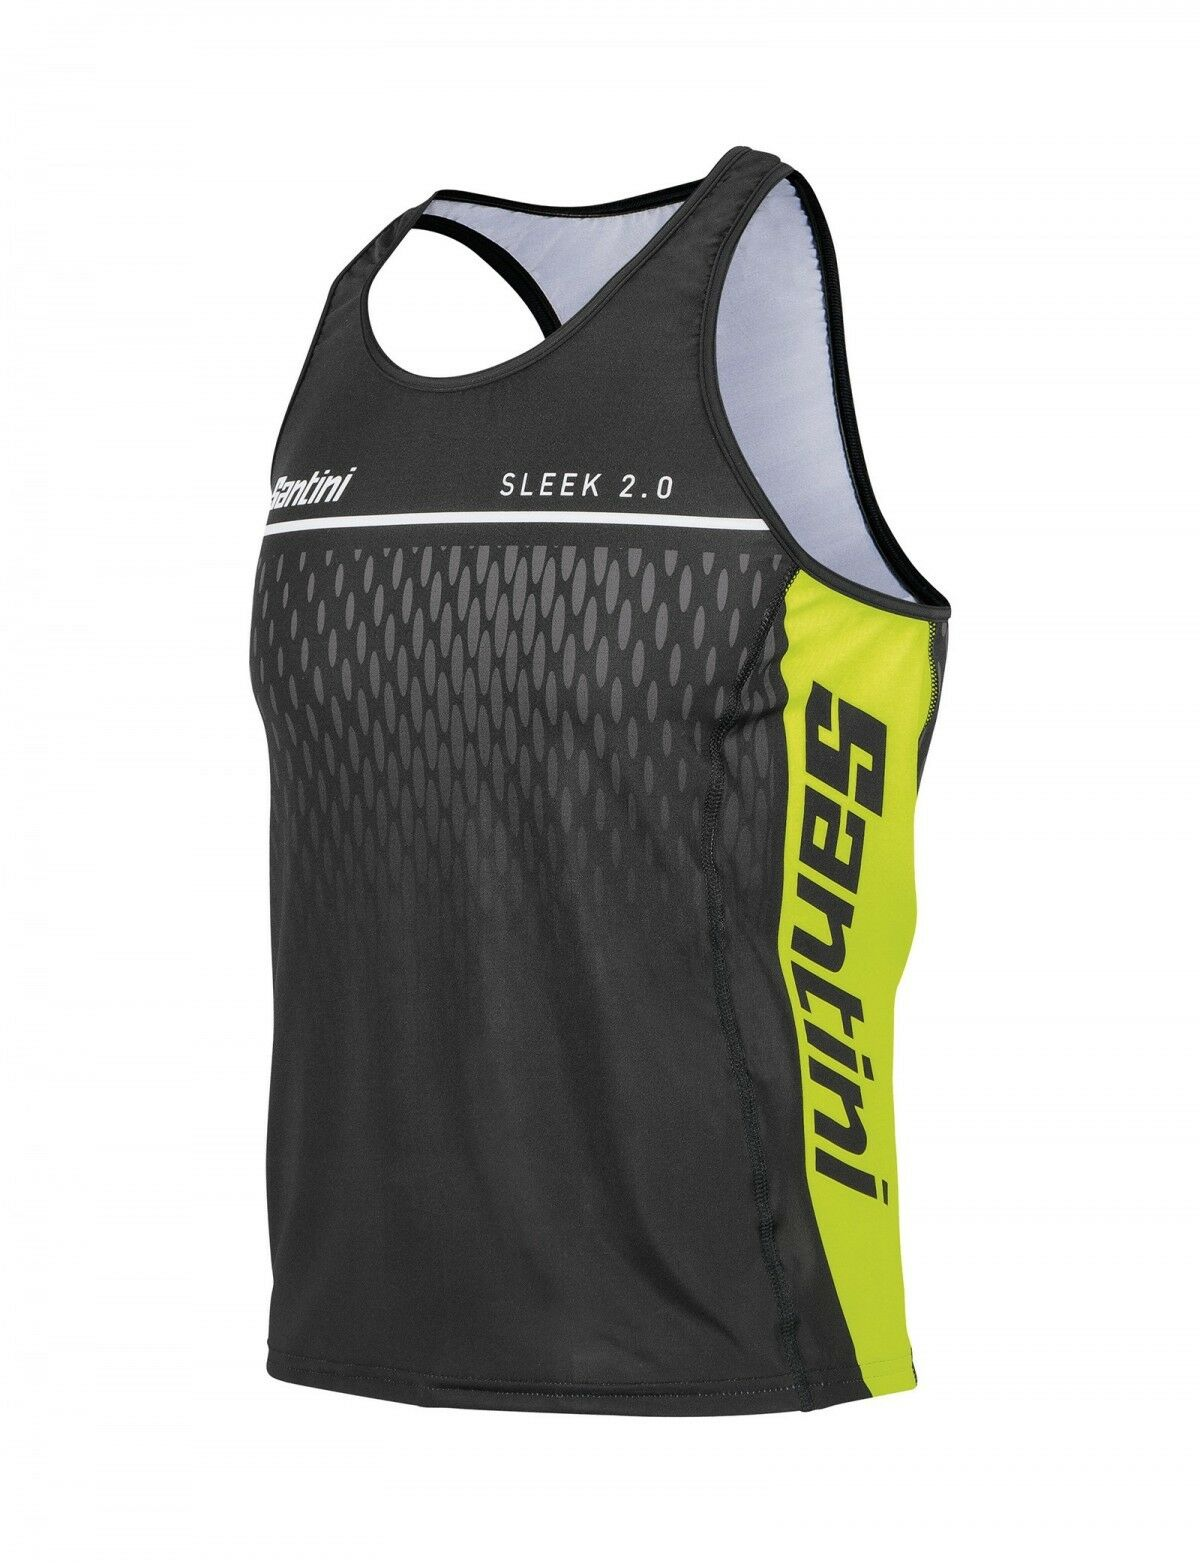 Men's Sleek Aero Tri Top - in Yellow -   made in  by Santini  cheap